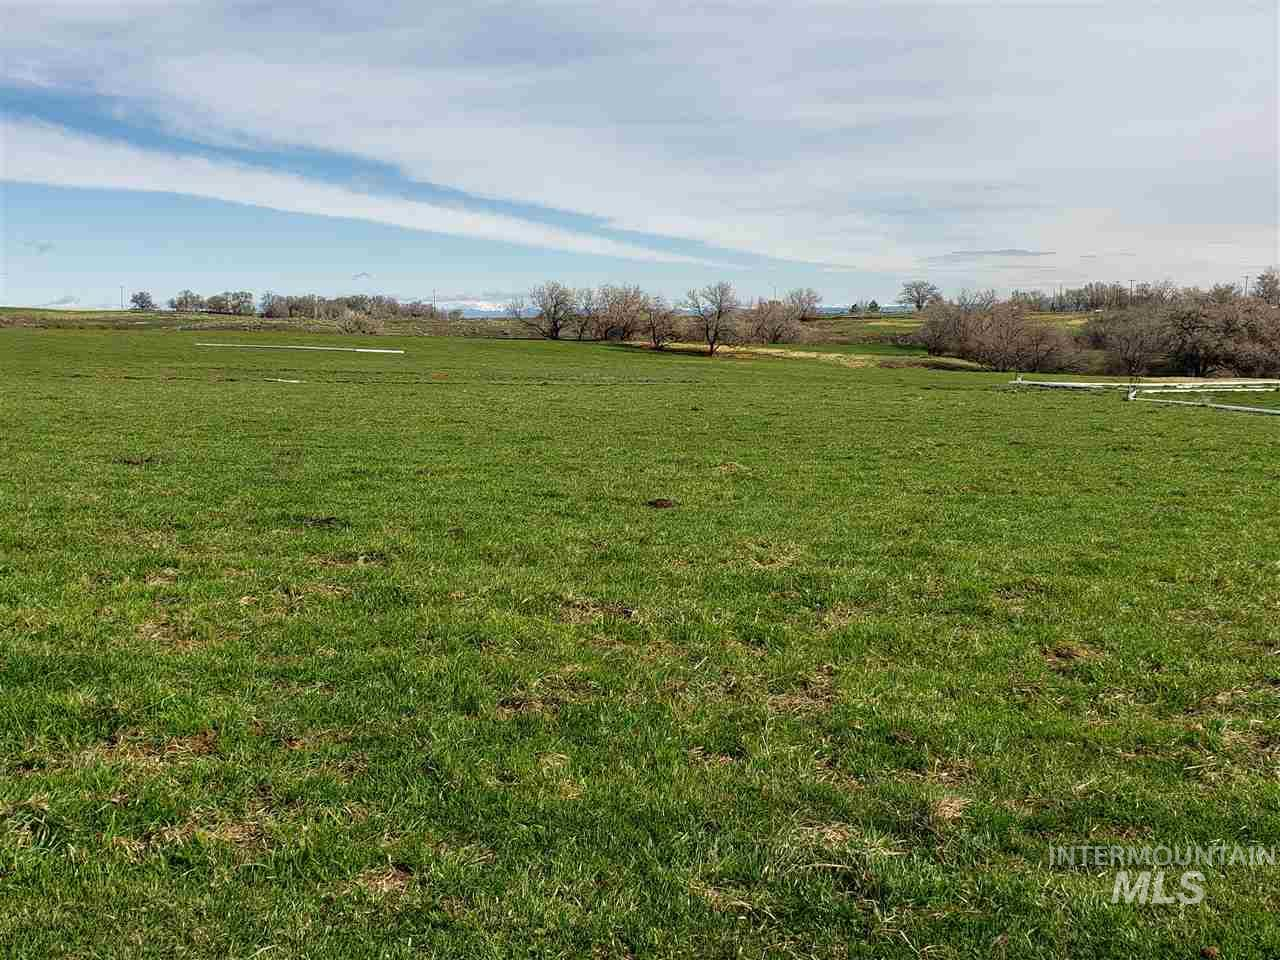 Agricultural Land for Sale at 1125 E 4300 N 1125 E 4300 N Buhl, Idaho 83316